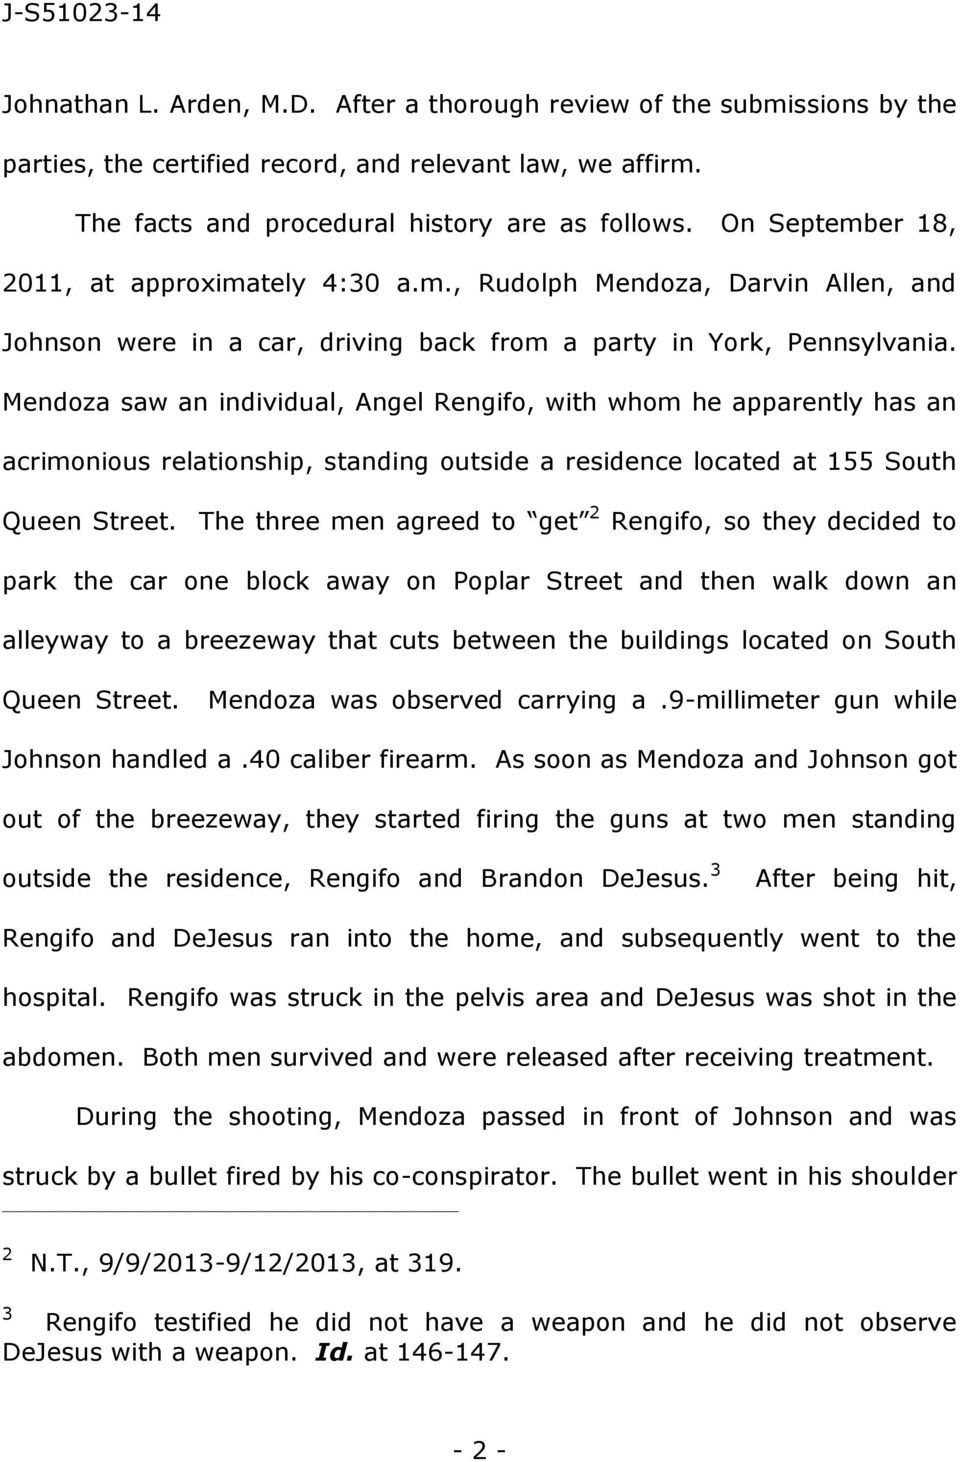 Mendoza saw an individual, Angel Rengifo, with whom he apparently has an acrimonious relationship, standing outside a residence located at 155 South Queen Street.